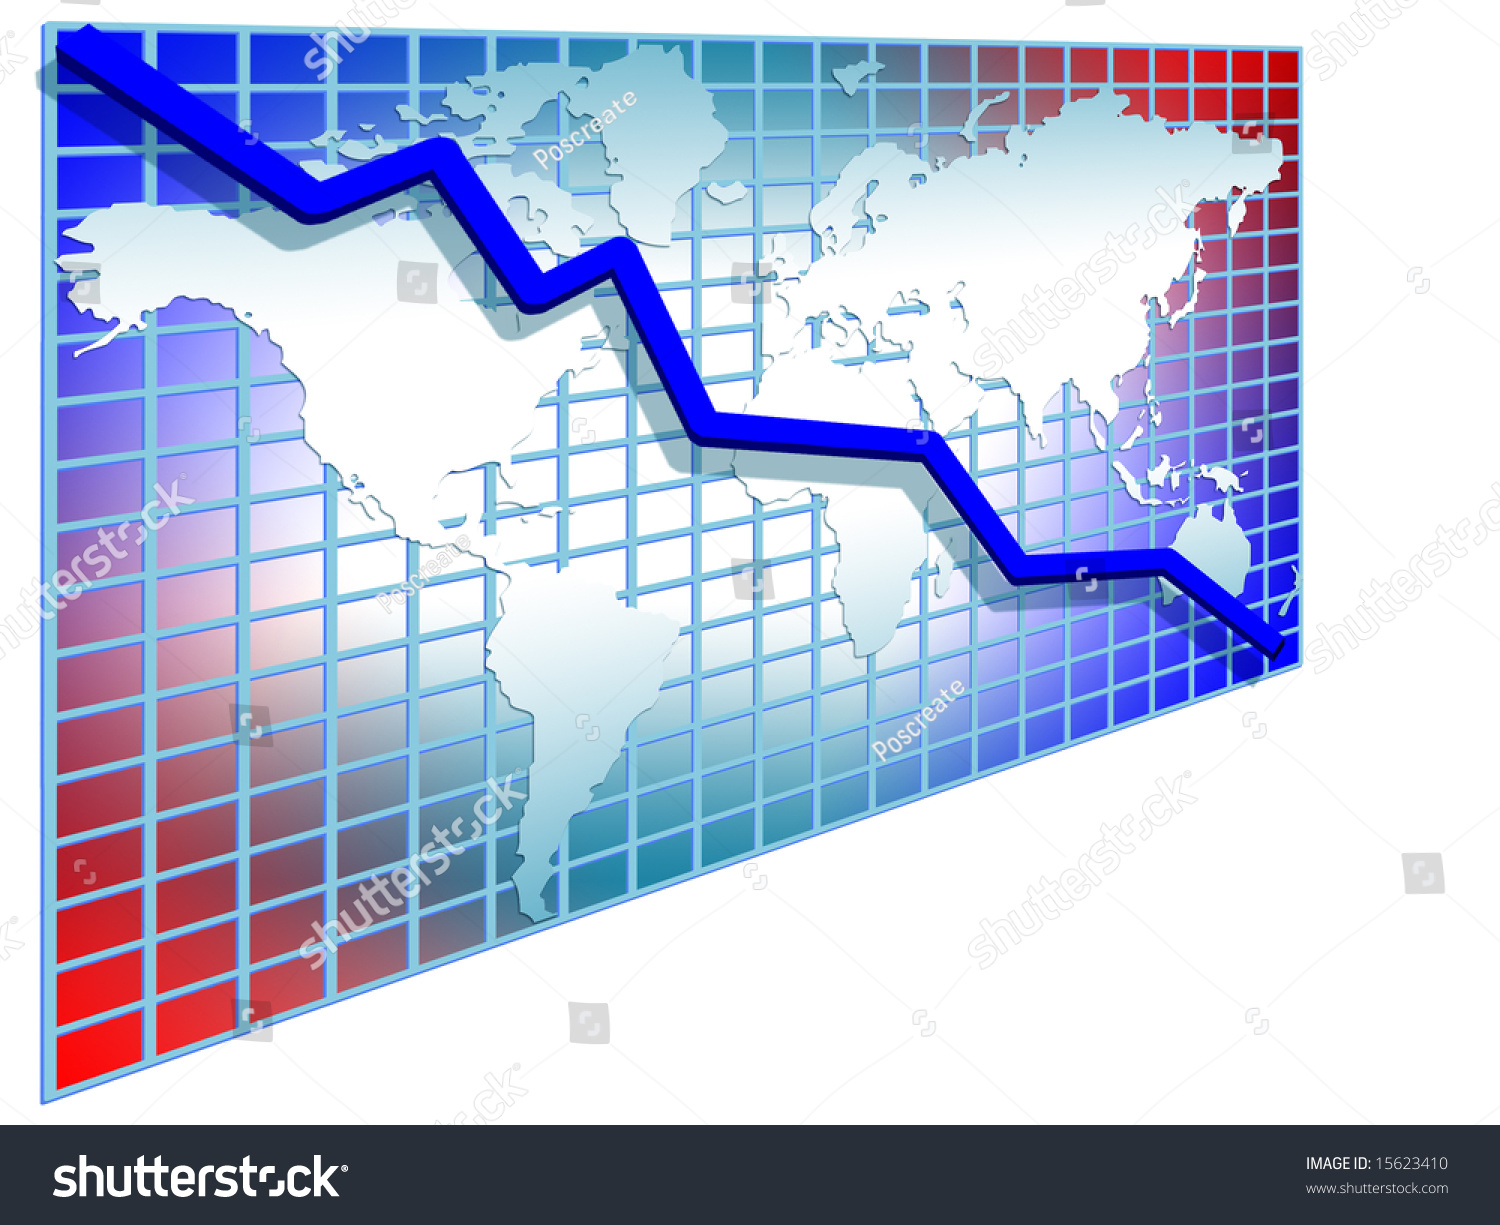 3 d line chart blue stock illustration 15623410 - shutterstock